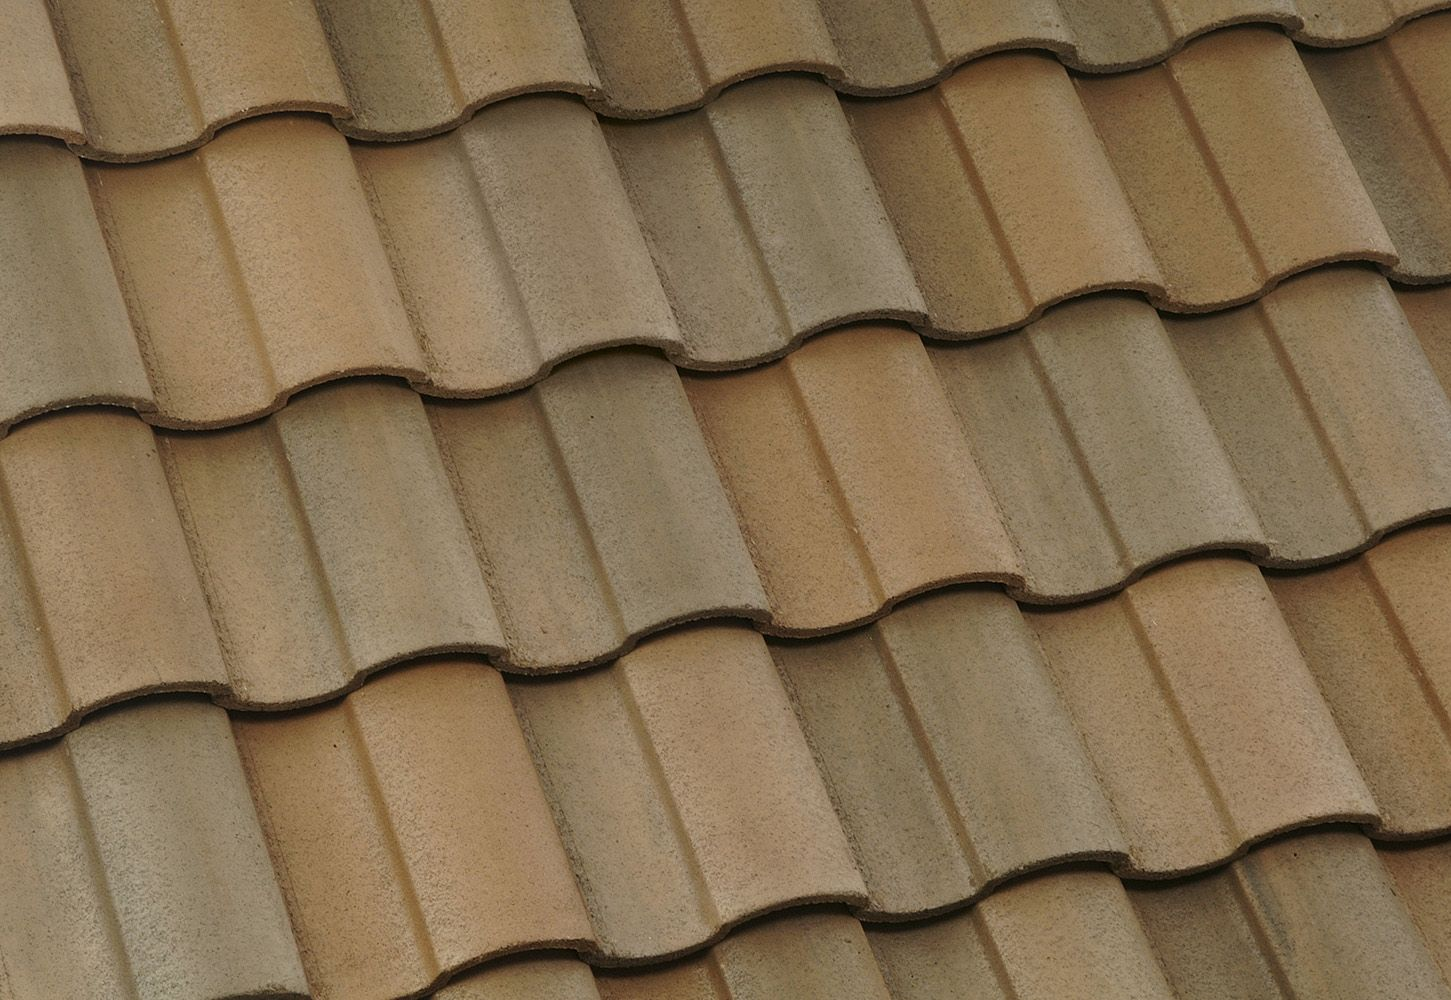 Eagle Roofing Products 3605 San Benito Blend Profile Capistrano Description Blend Of Terracotta Light Brown Category Standard Roofing Roof Shingles Roof